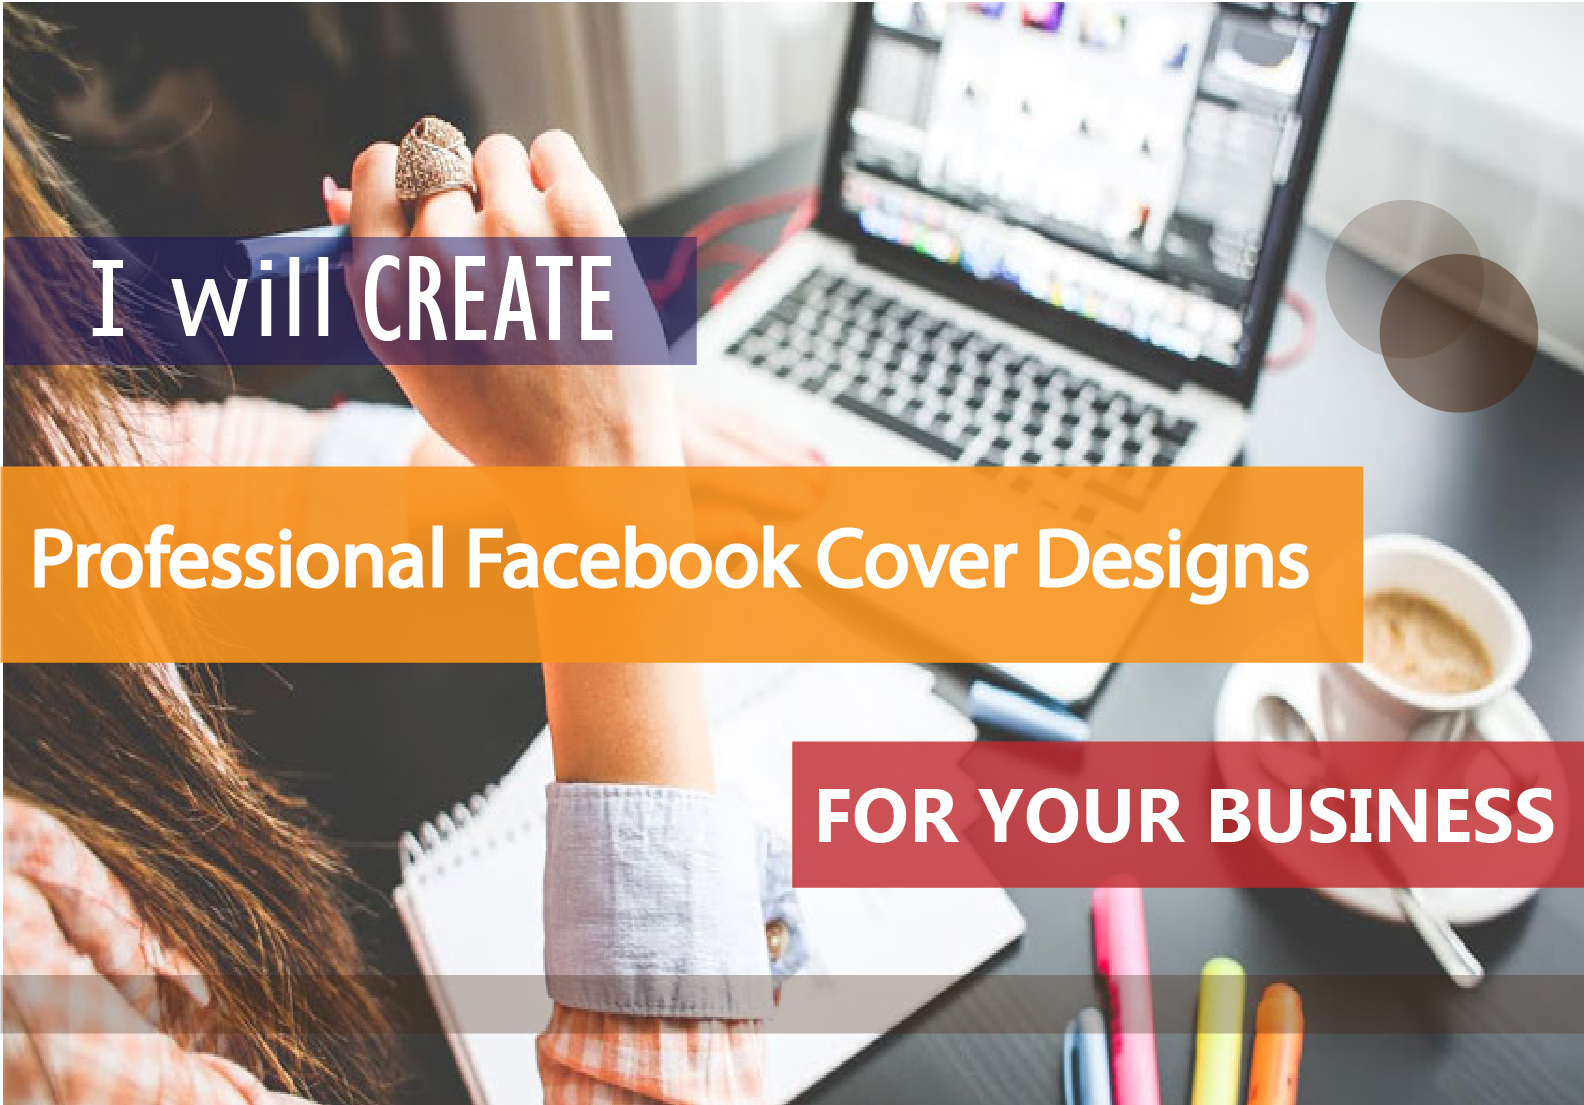 I will create Professional Facebook Cover Designs for your Business